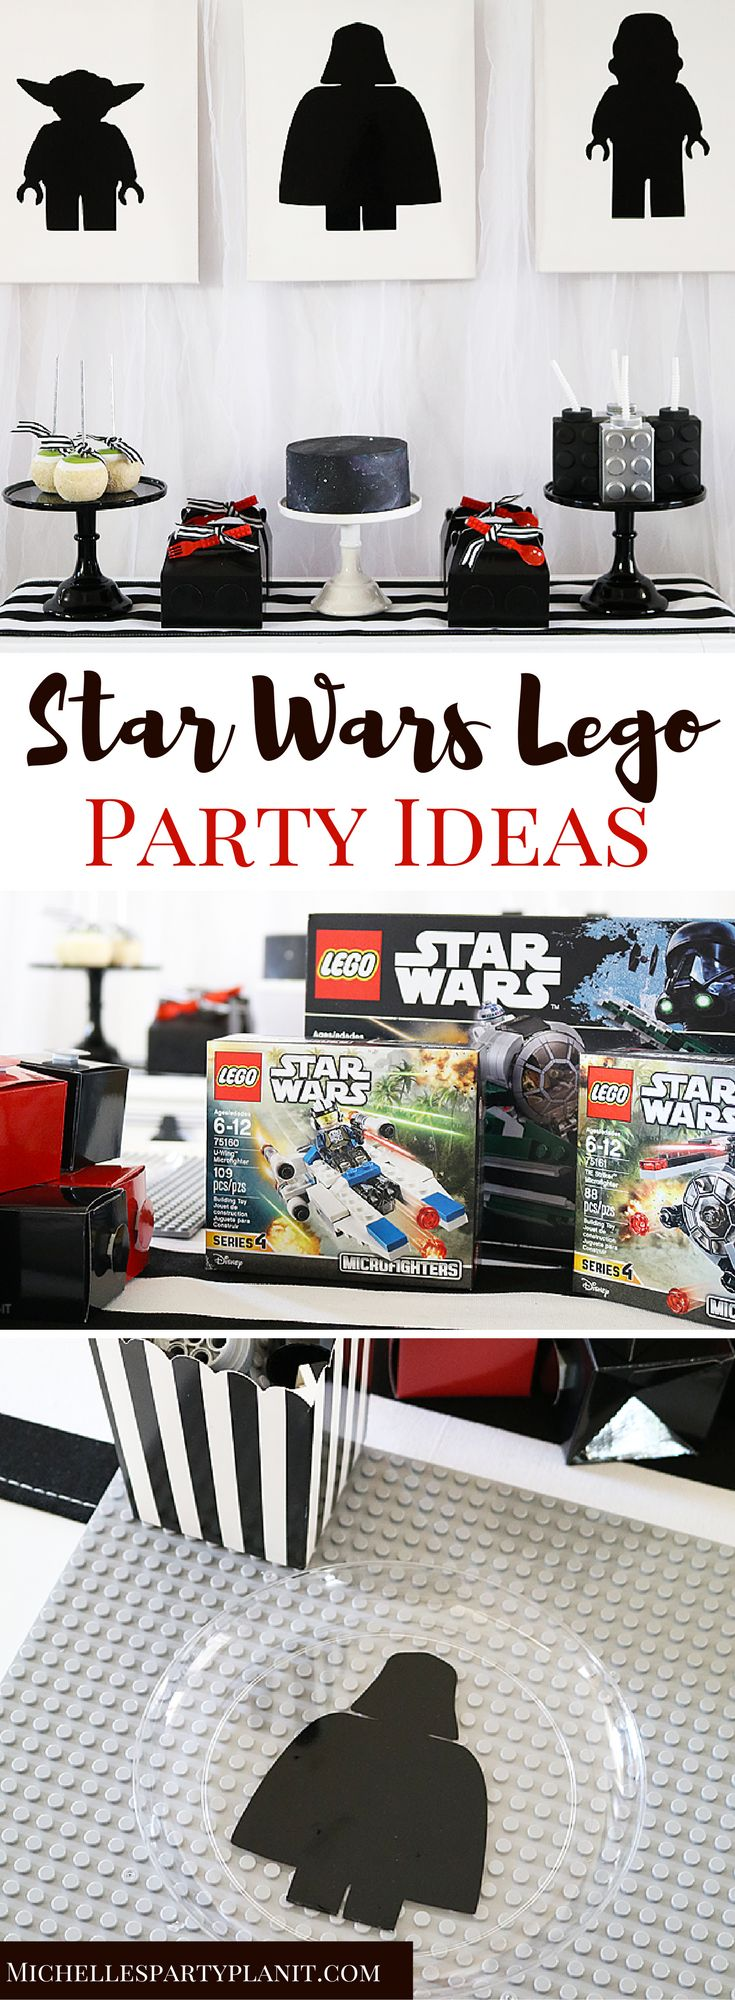 Simple party ideas for the biggest Star Wars Lego fan! Plan a fun Star Wars Lego Party with these easy ideas by Michelle's Party Plan-It.